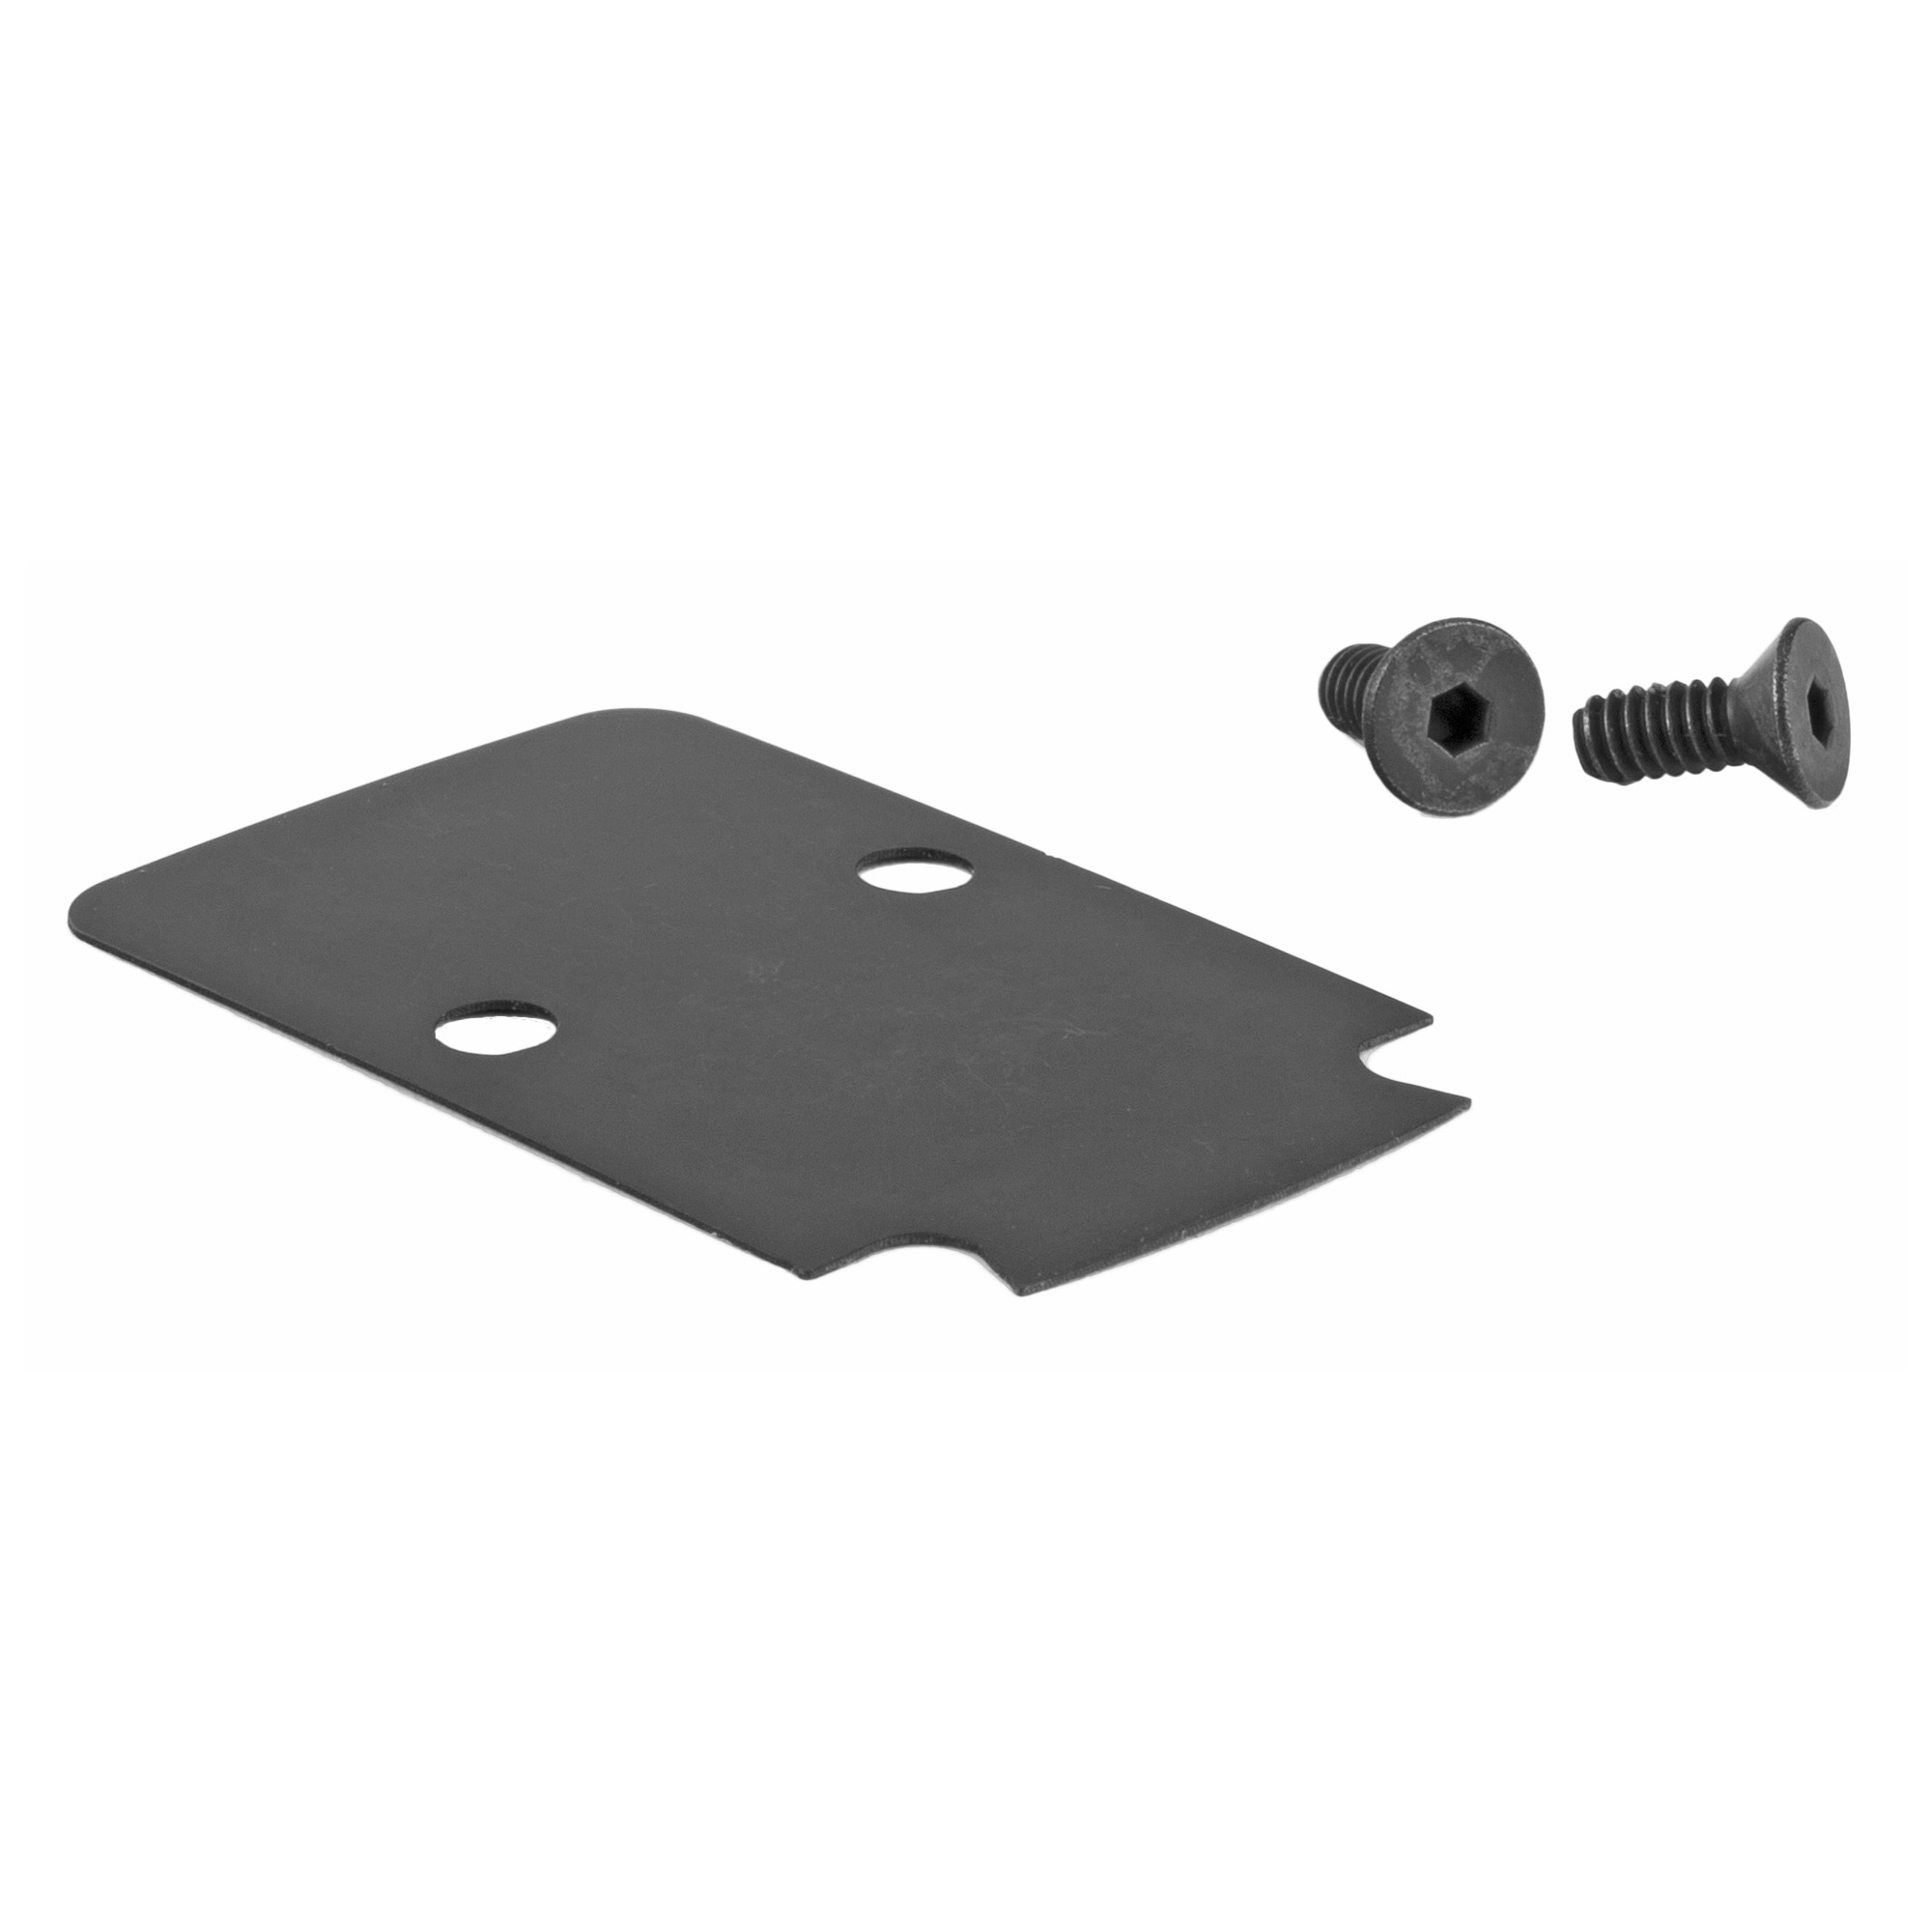 "This kit includes the sealing plate and proper screws needed to mount an RMR(R)/SRO(TM) on the Glock(R) MOS slide and the Springfield(R) OSP pistol. For the SRO(TM)"" only the screws in this kit are required for proper mounting. One must have this kit to mount an RMR(R)/SRO(TM) on a MOS slide. Both optics ship with two long screws which will NOT work. You will need the two short screws in this kit."